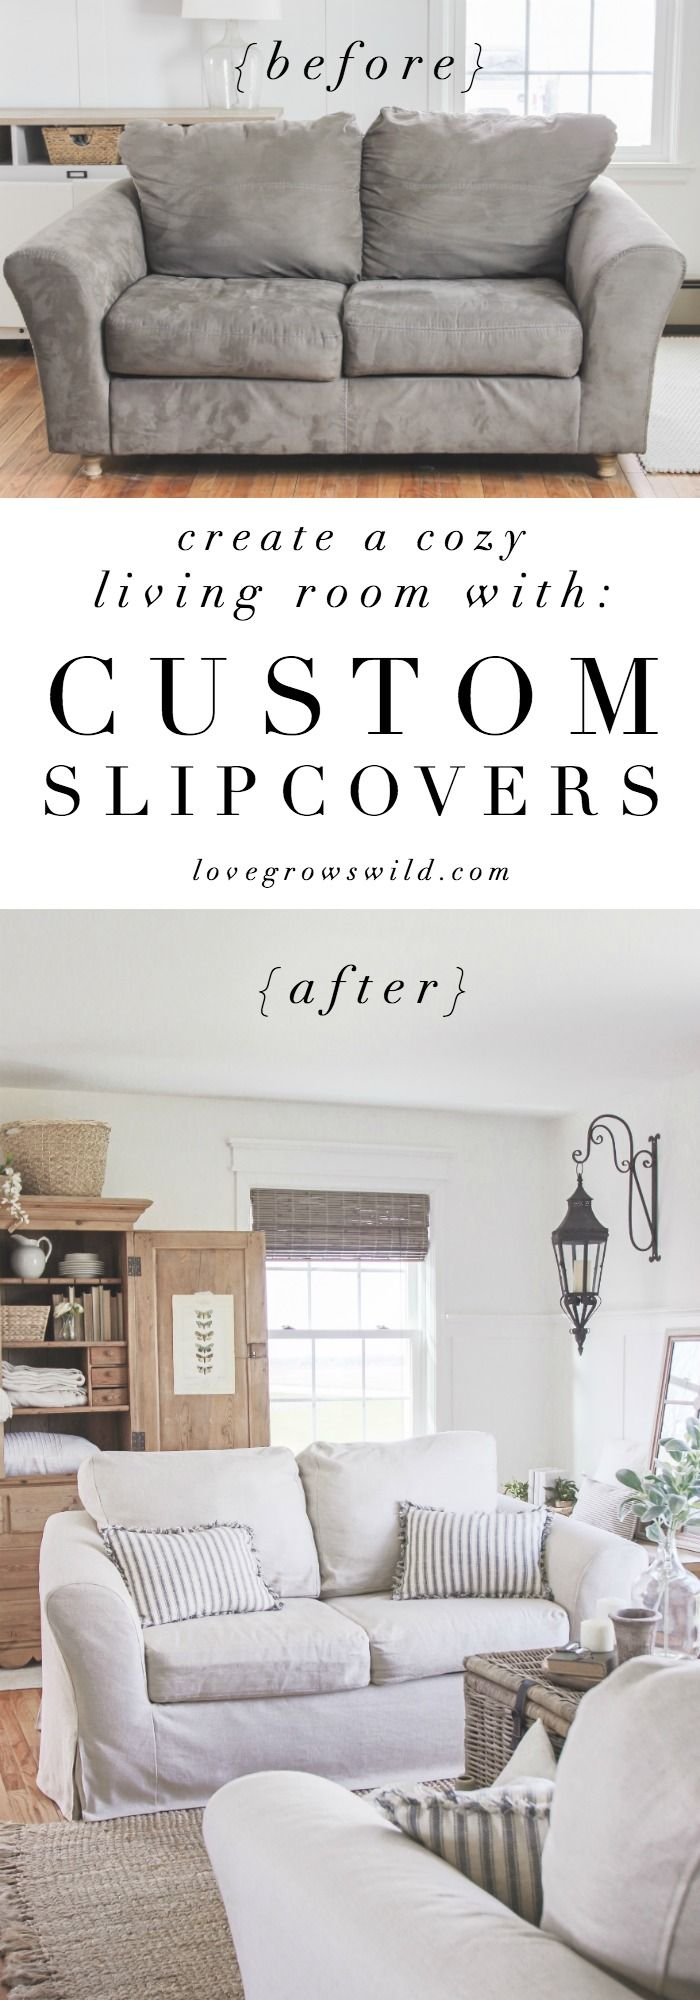 Slipcovers Living Room Chairs 25 Best Ideas About Custom Slipcovers On Pinterest Slipcovers